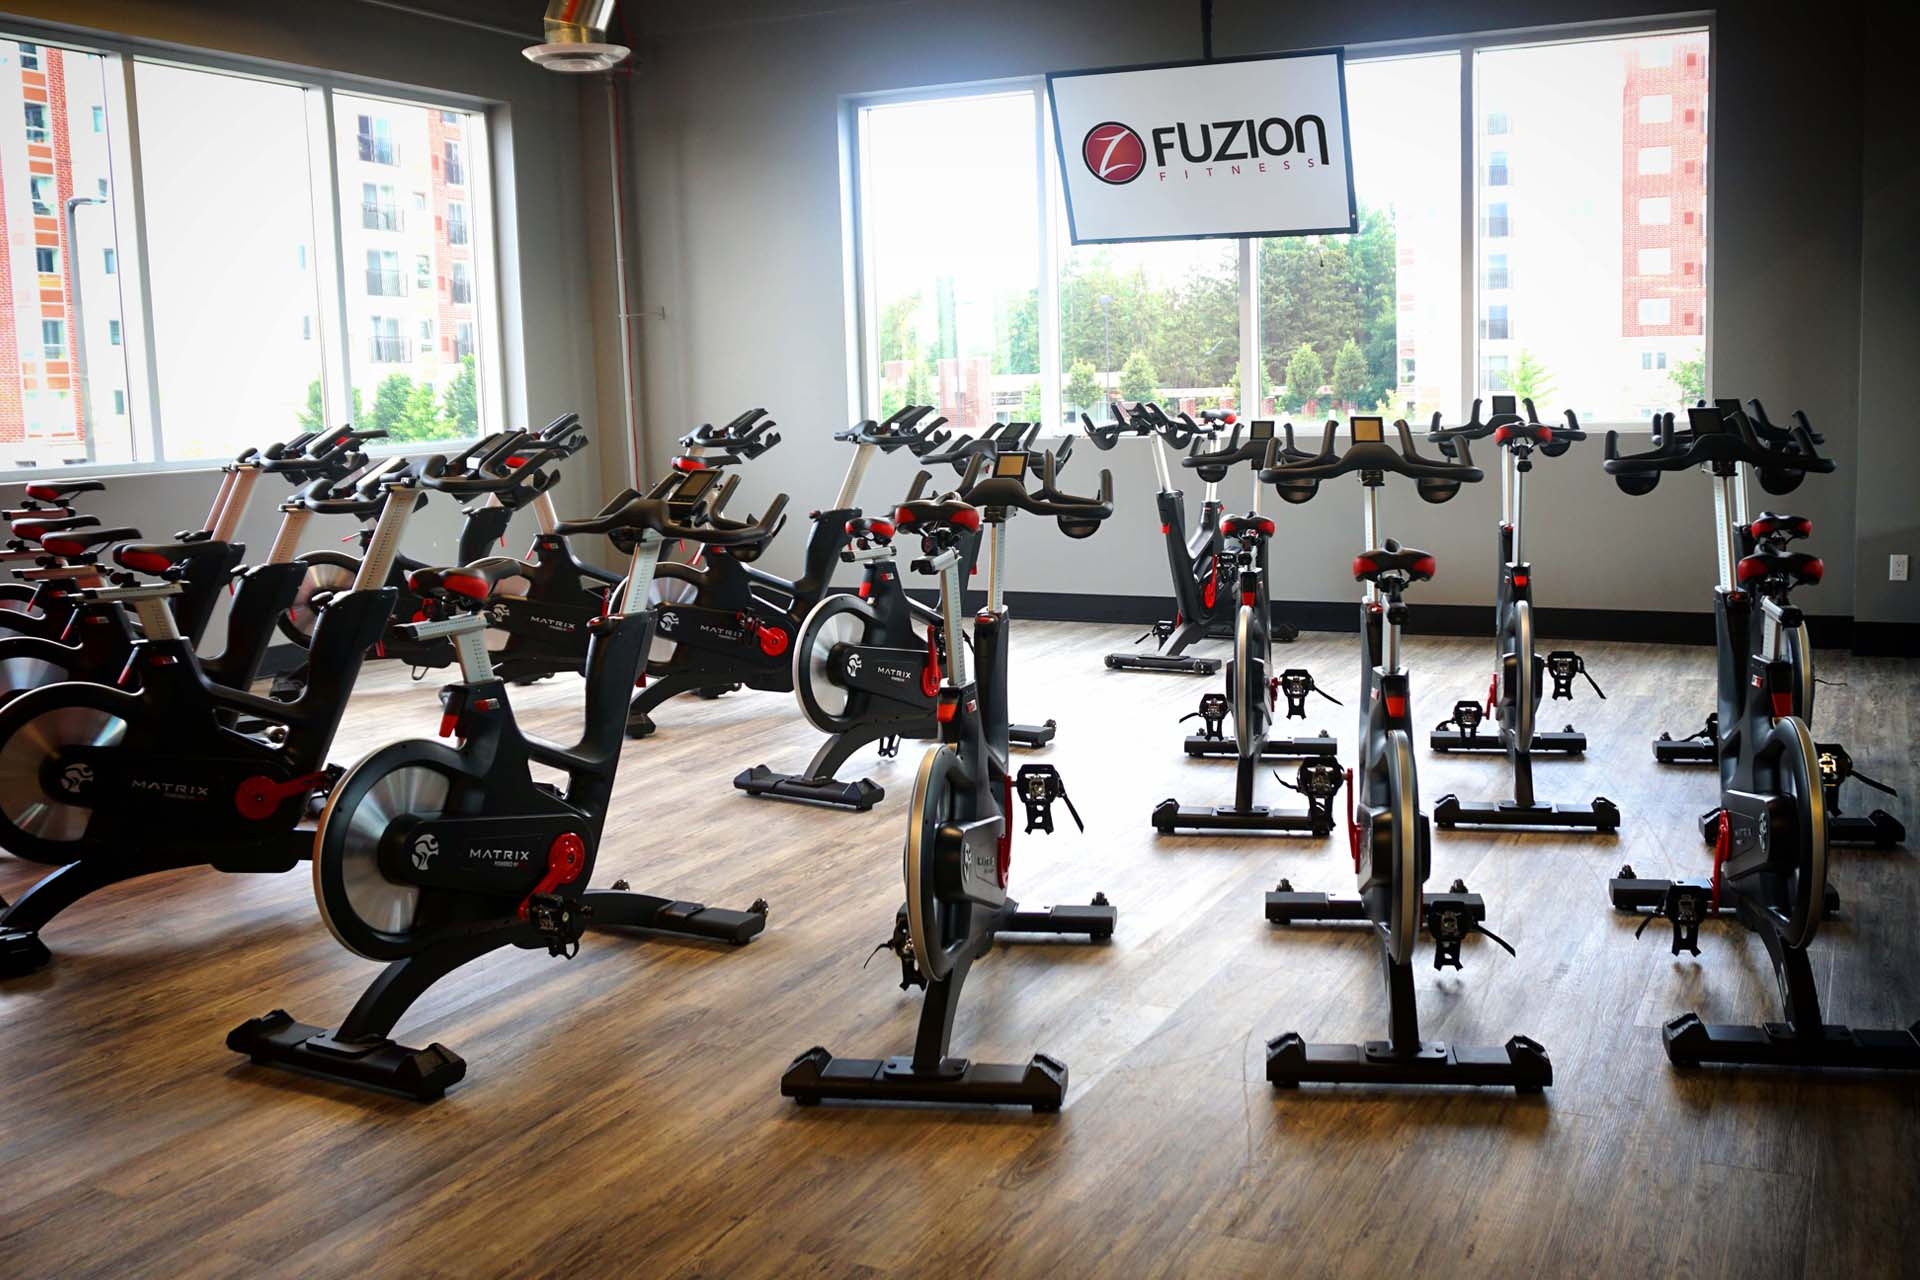 stationary bikes in cycling group in a room